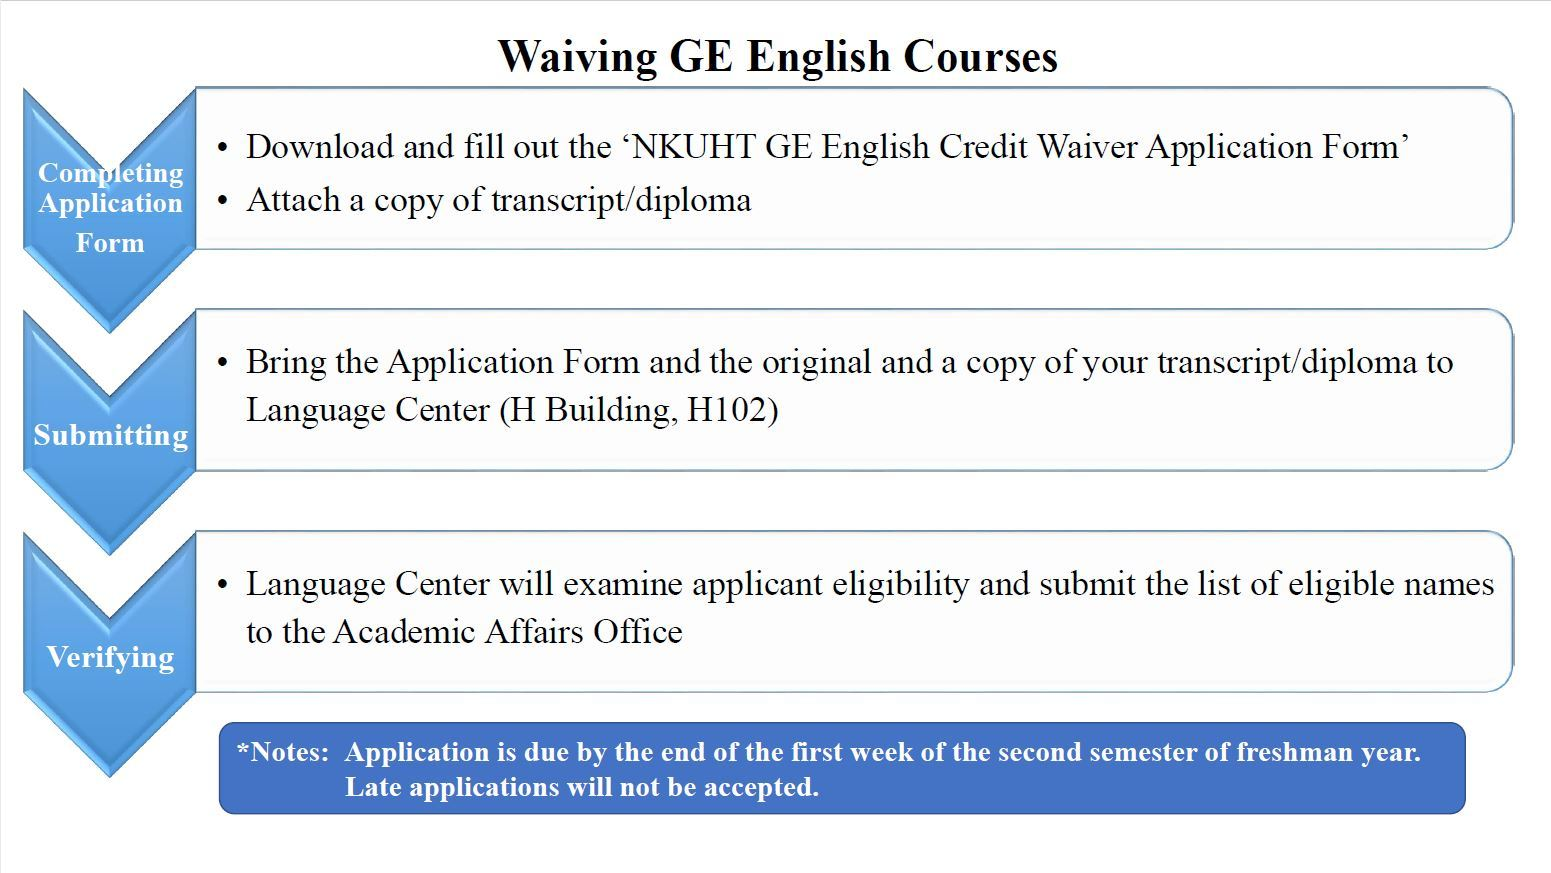 02_Waiving GE English Couses